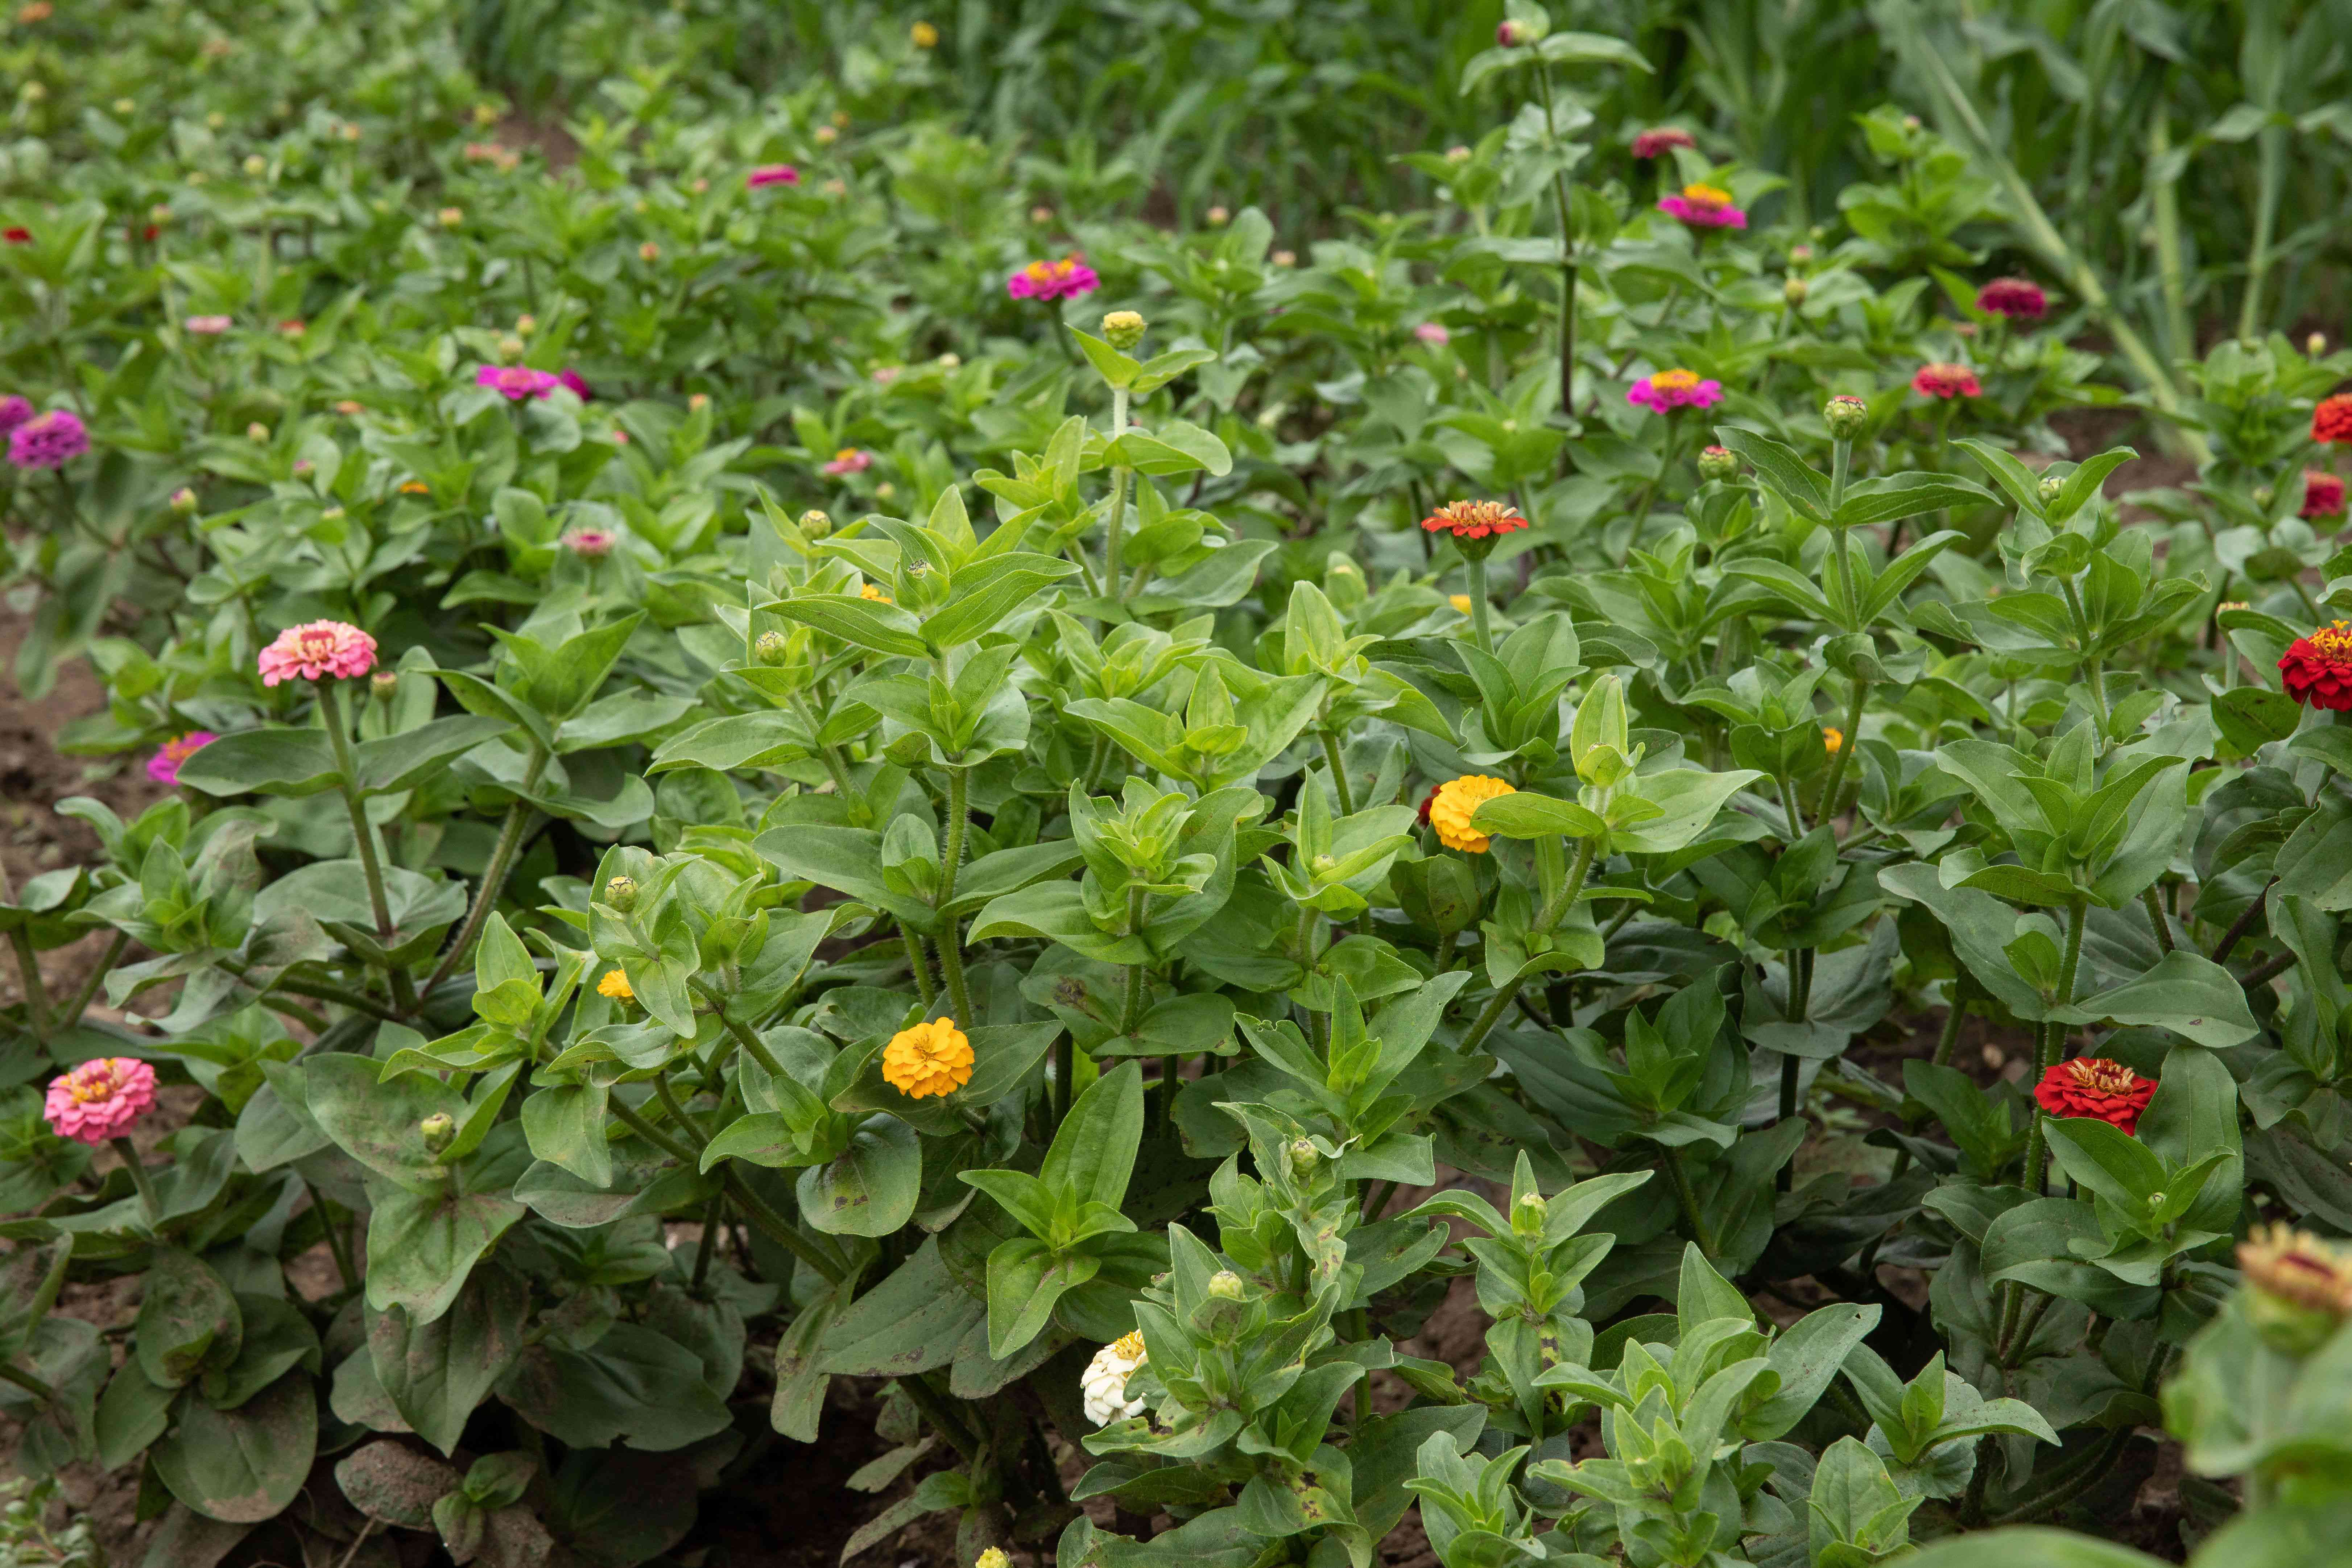 Zinnia flowers with colorful yellow, pink and red petals in garden